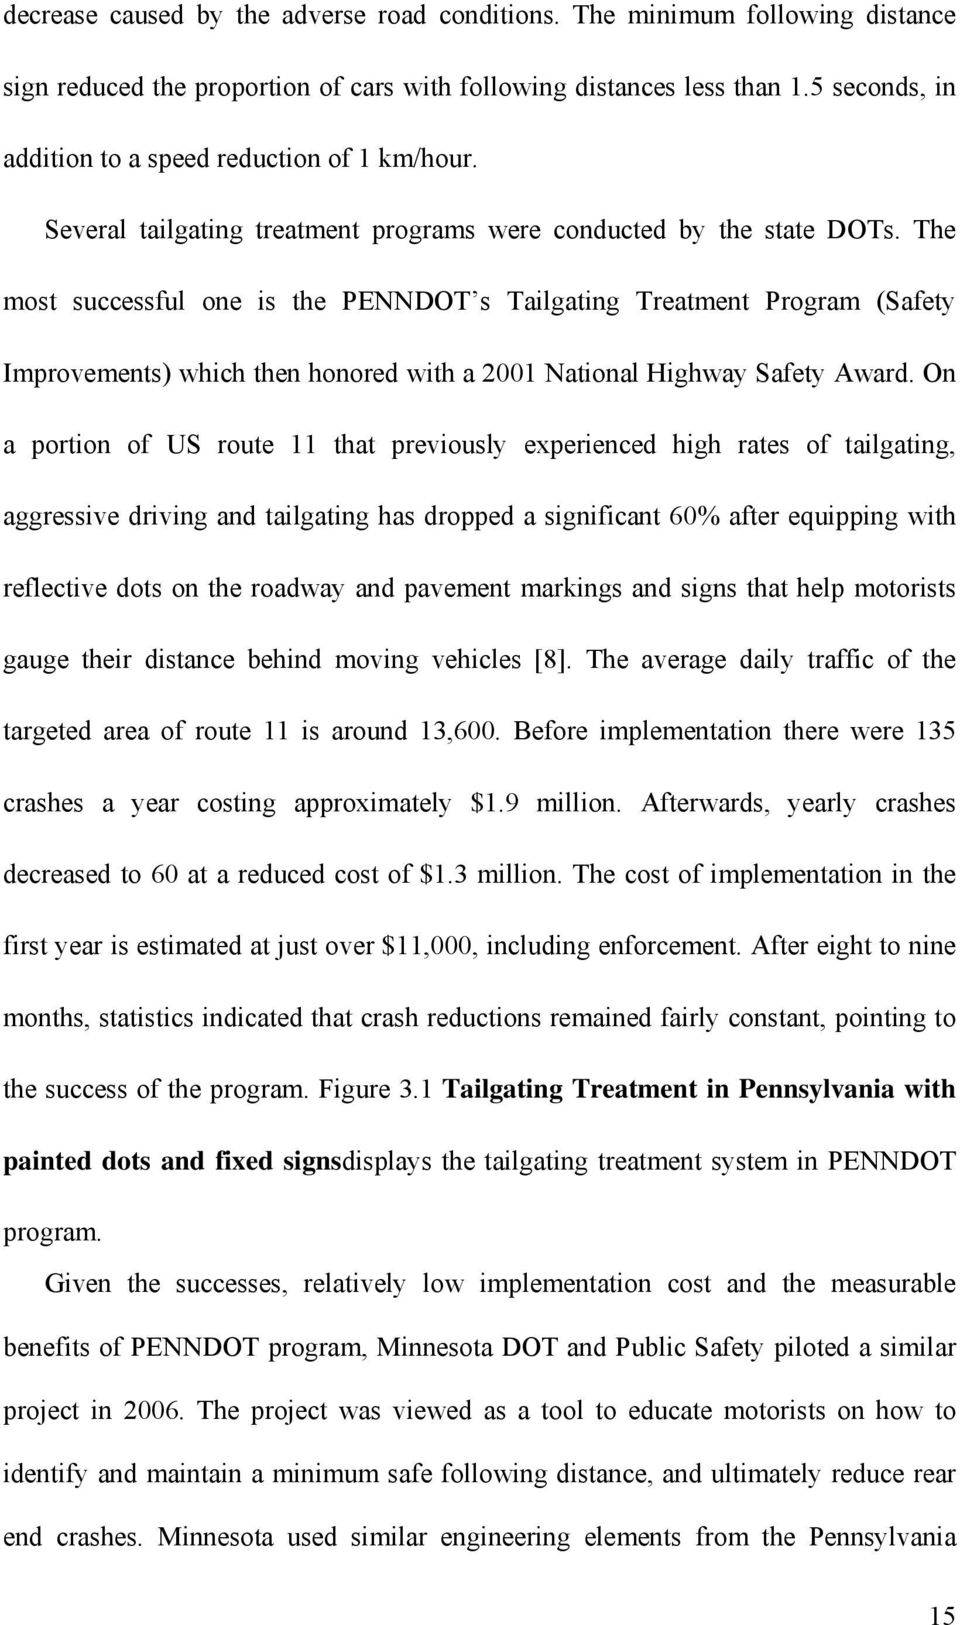 The most successful one is the PENNDOT s Tailgating Treatment Program (Safety Improvements) which then honored with a 2001 National Highway Safety Award.